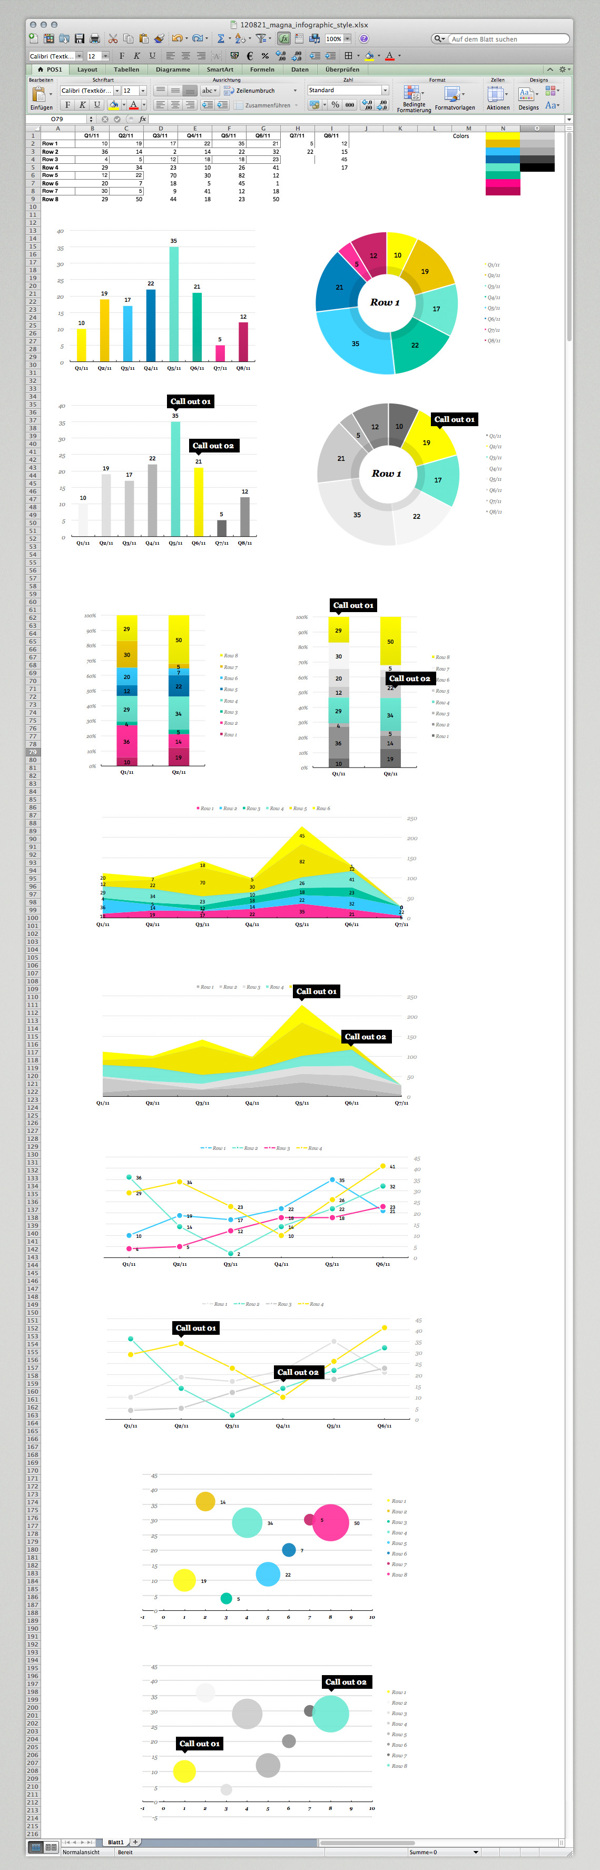 Magnaglobal Infographic Excel Template By Bureau Oberhaeuser Via Behance Excel Templates Data Visualization Excel Dashboard Templates